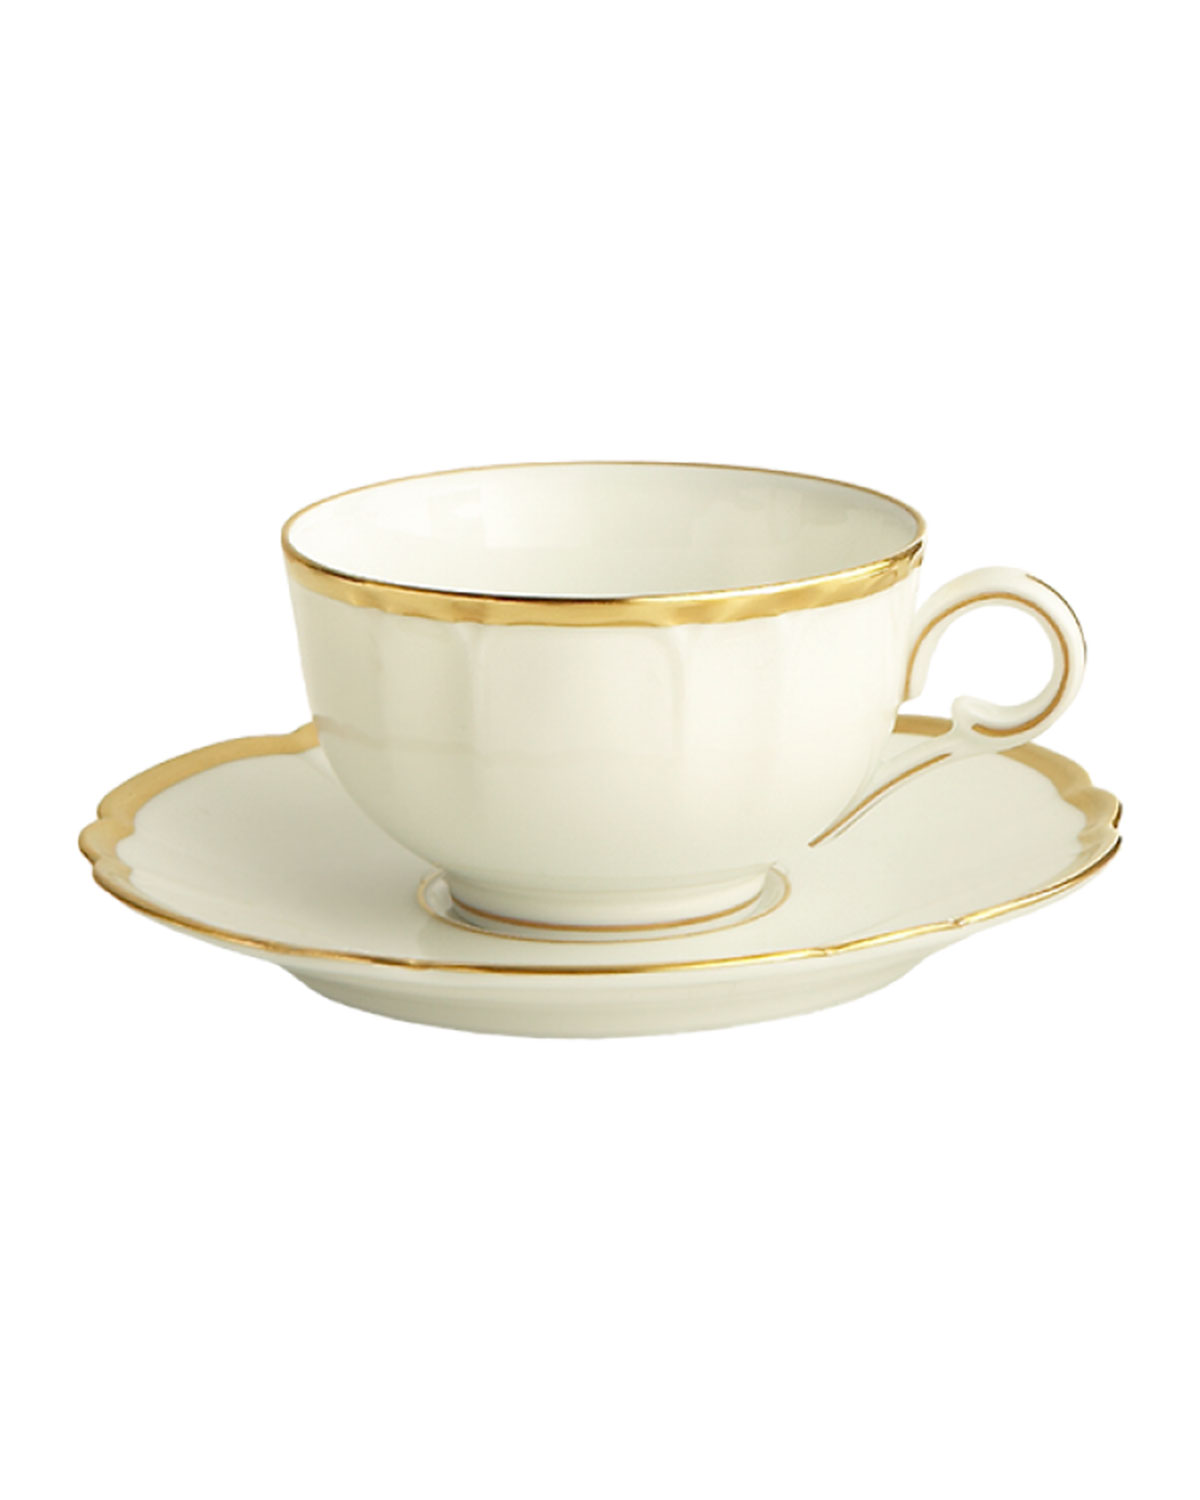 Haviland & Parlon Drinkwares COLETTE GOLD CUP AND SAUCER